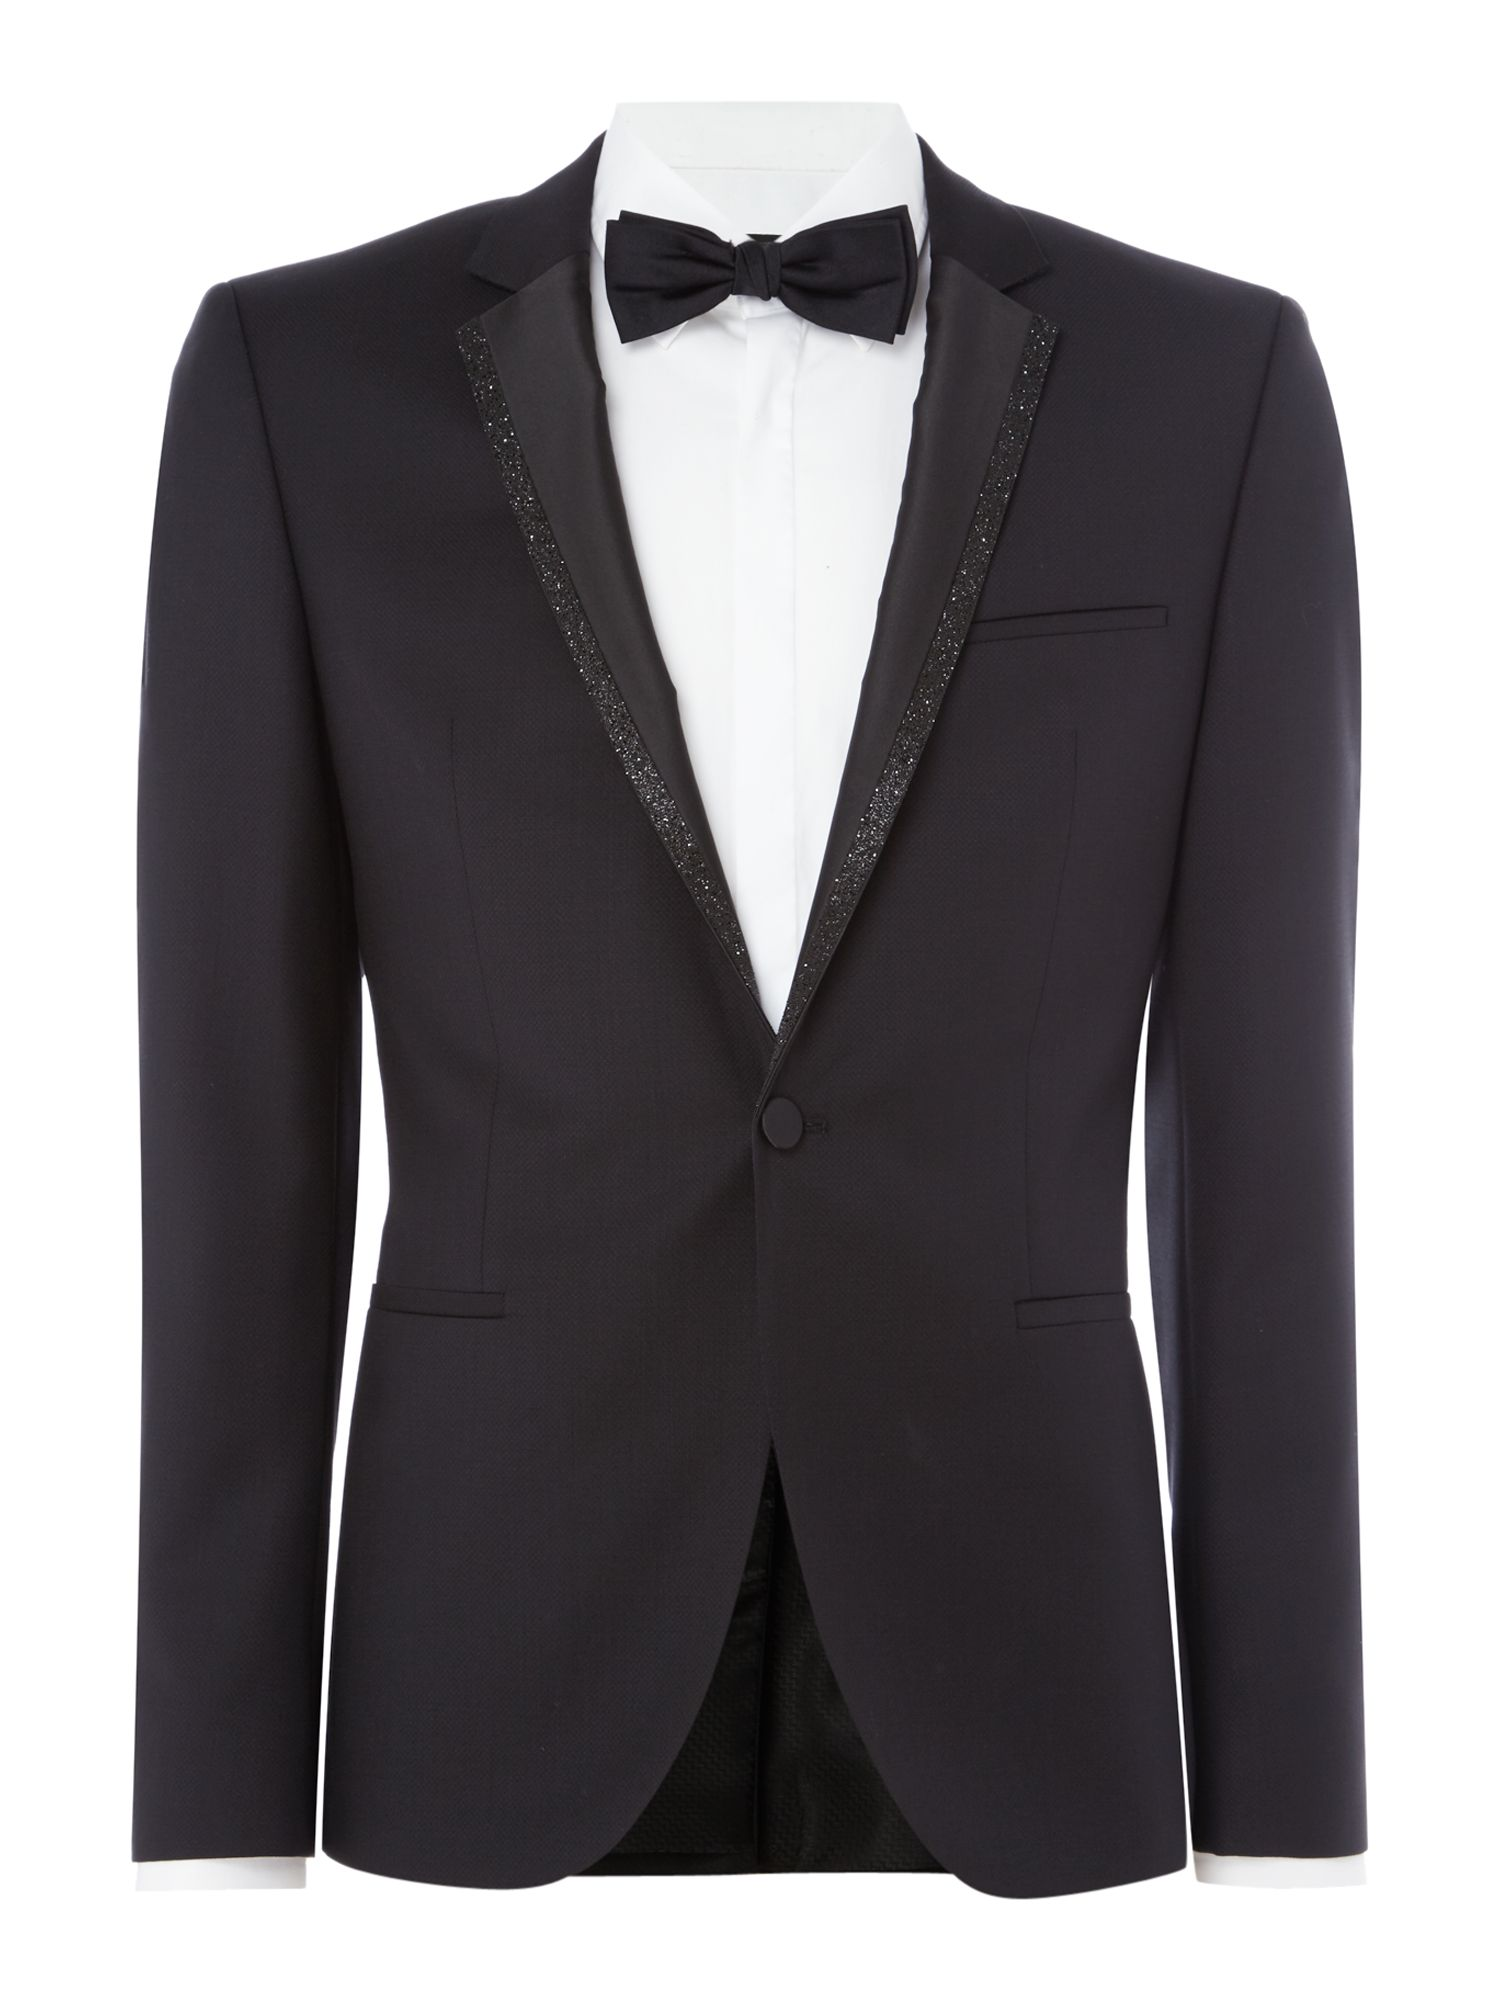 HUGO Men's Hugo Adrison Glitter Trim Dinner Jacket, Black